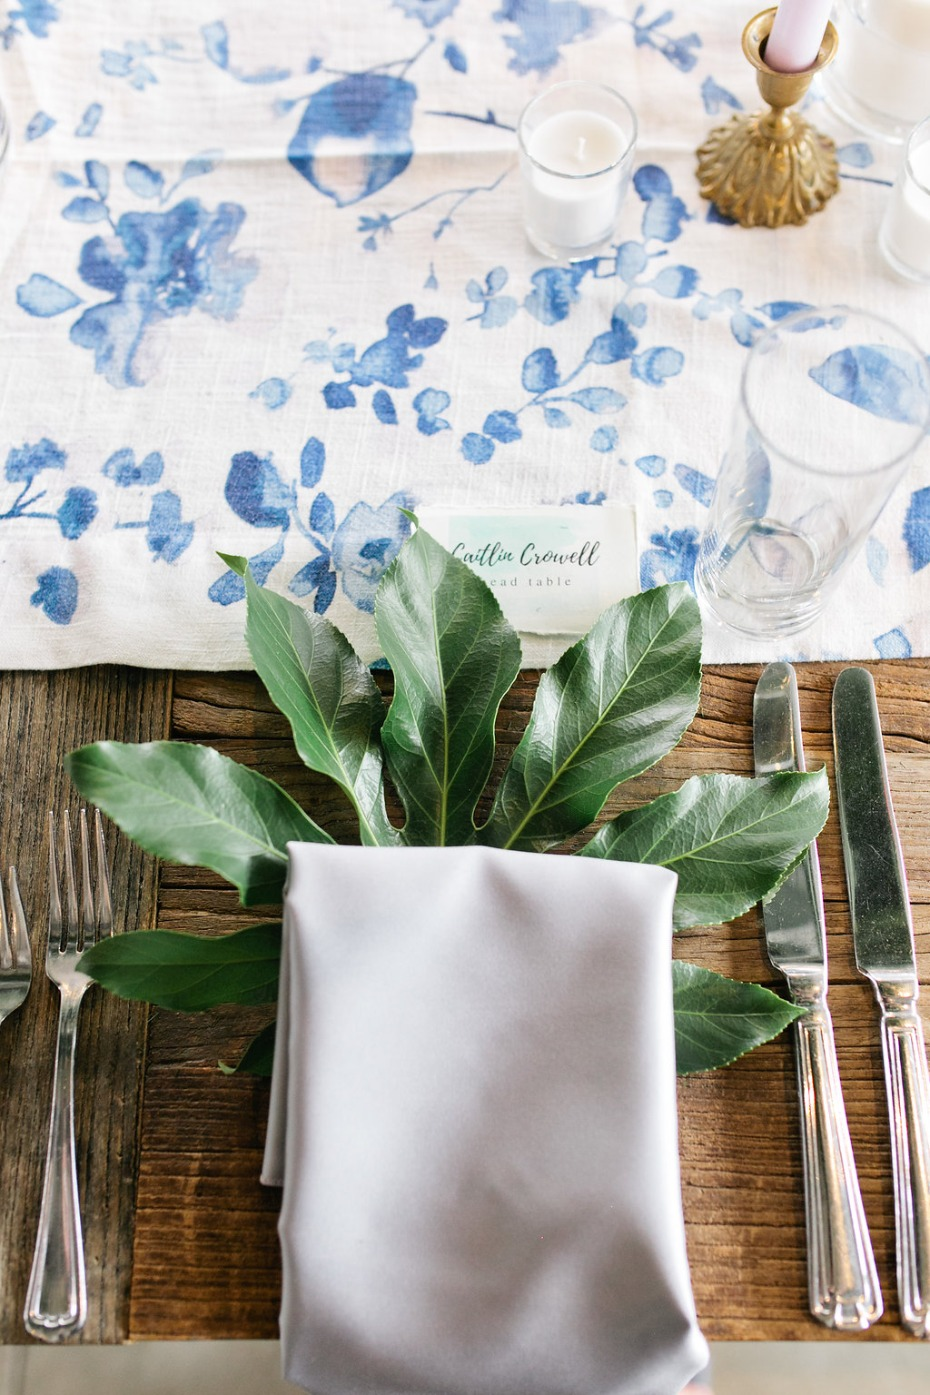 giant leaf at each place setting